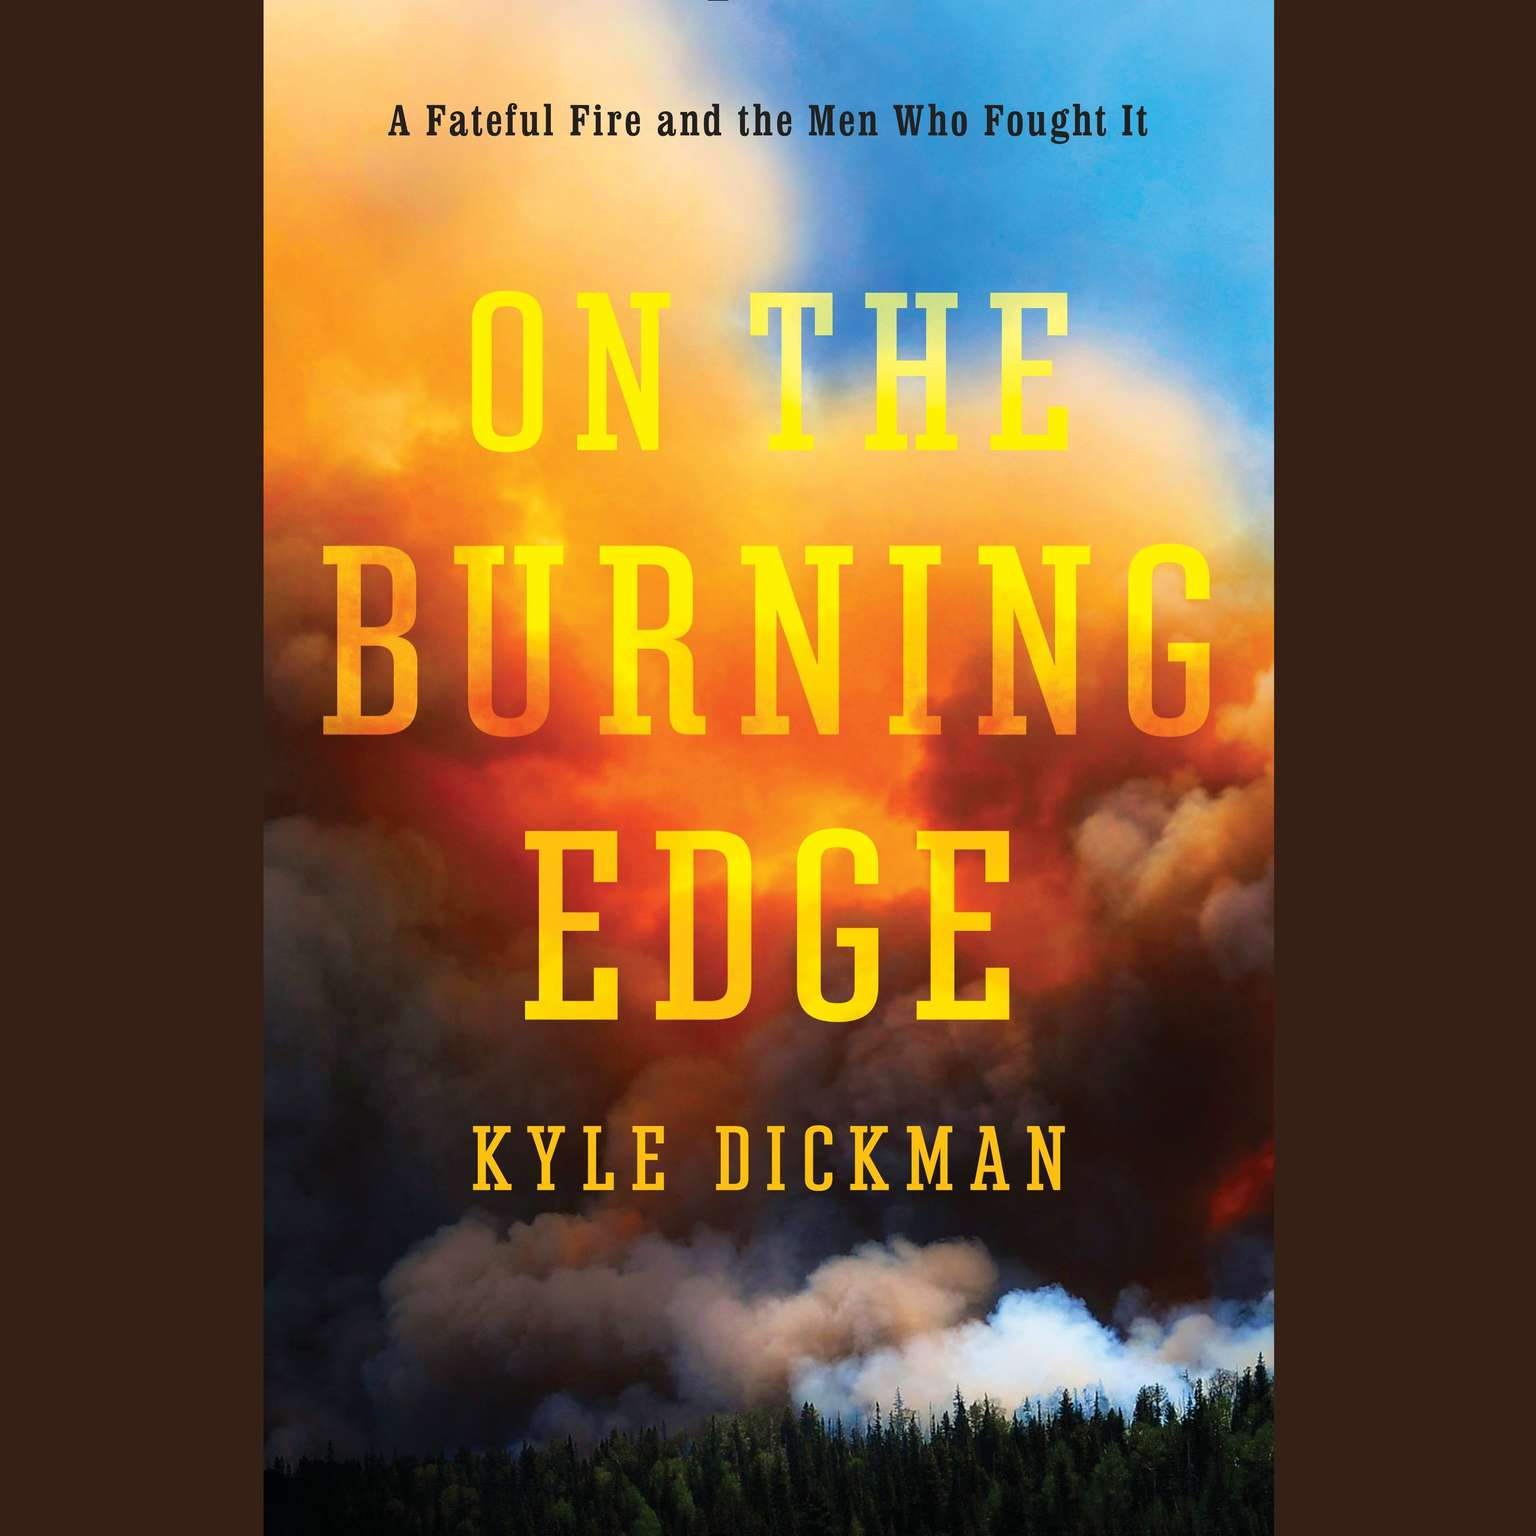 Printable On the Burning Edge: A Fateful Fire and the Men Who Fought It Audiobook Cover Art